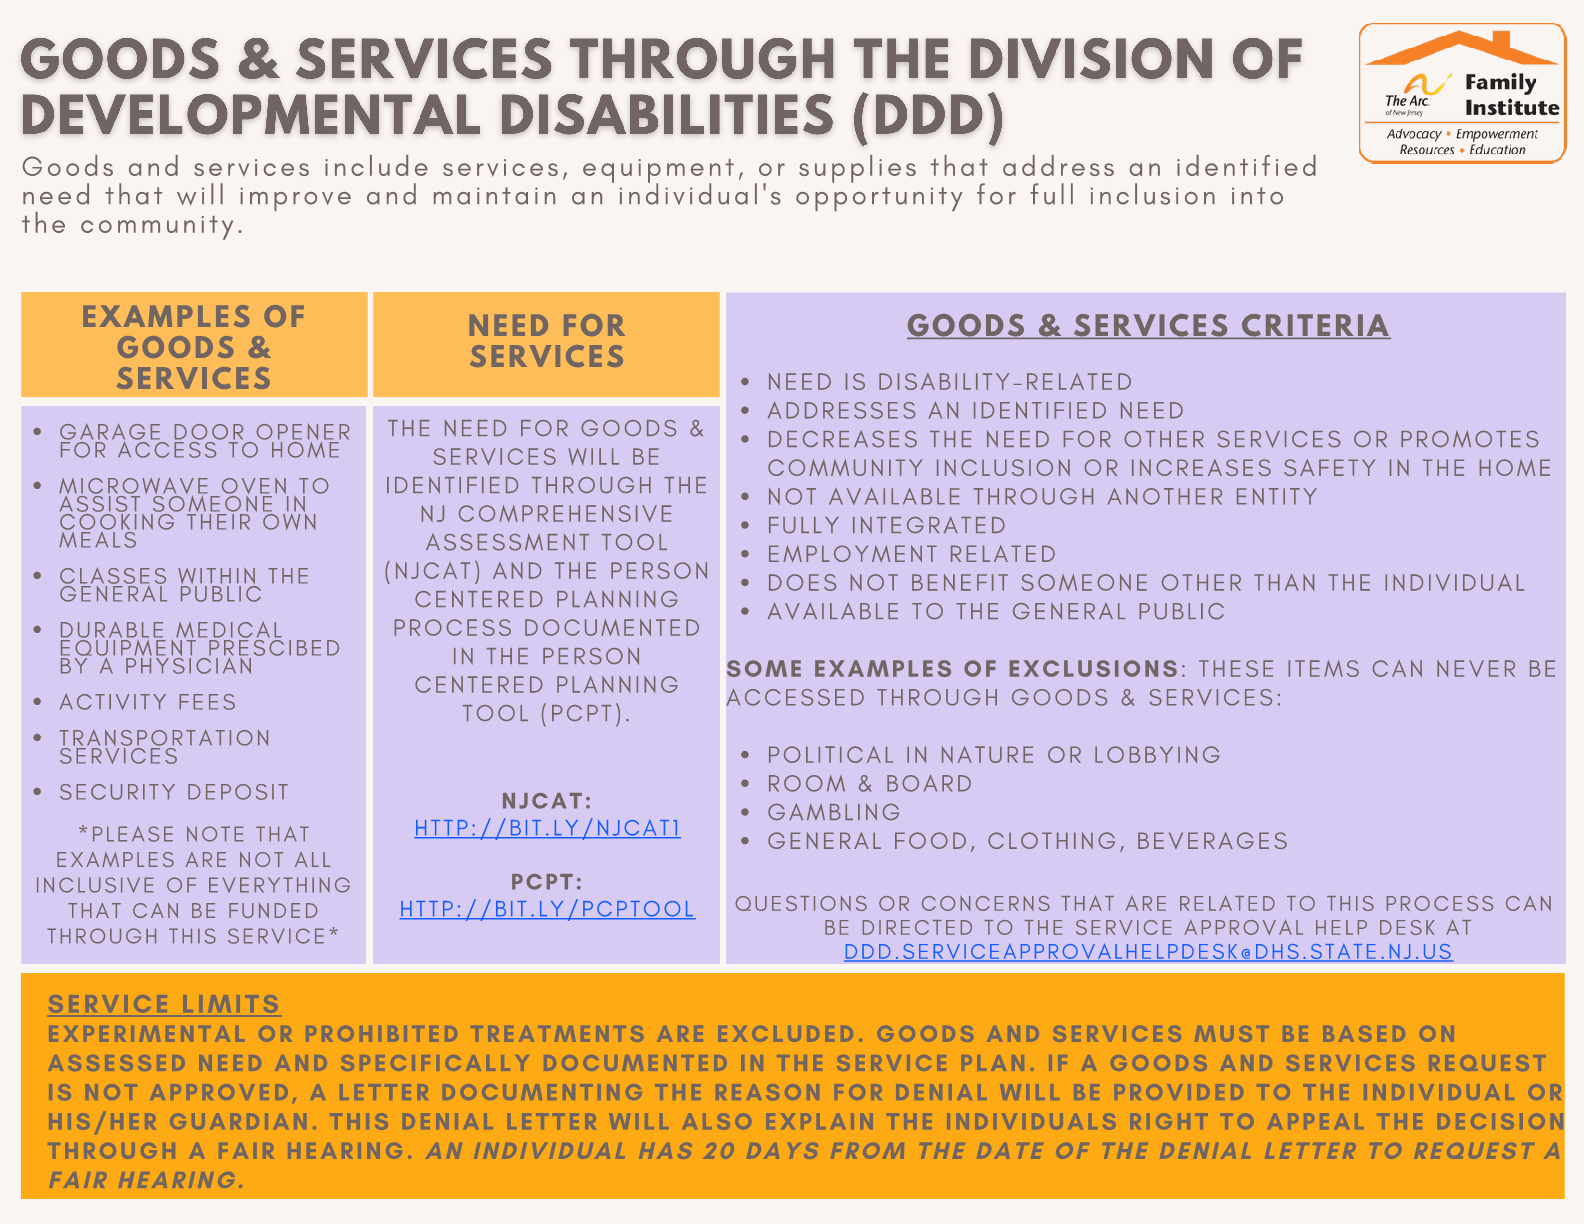 Goods and Services Through The Division of Developmental Disabilities (DDD)